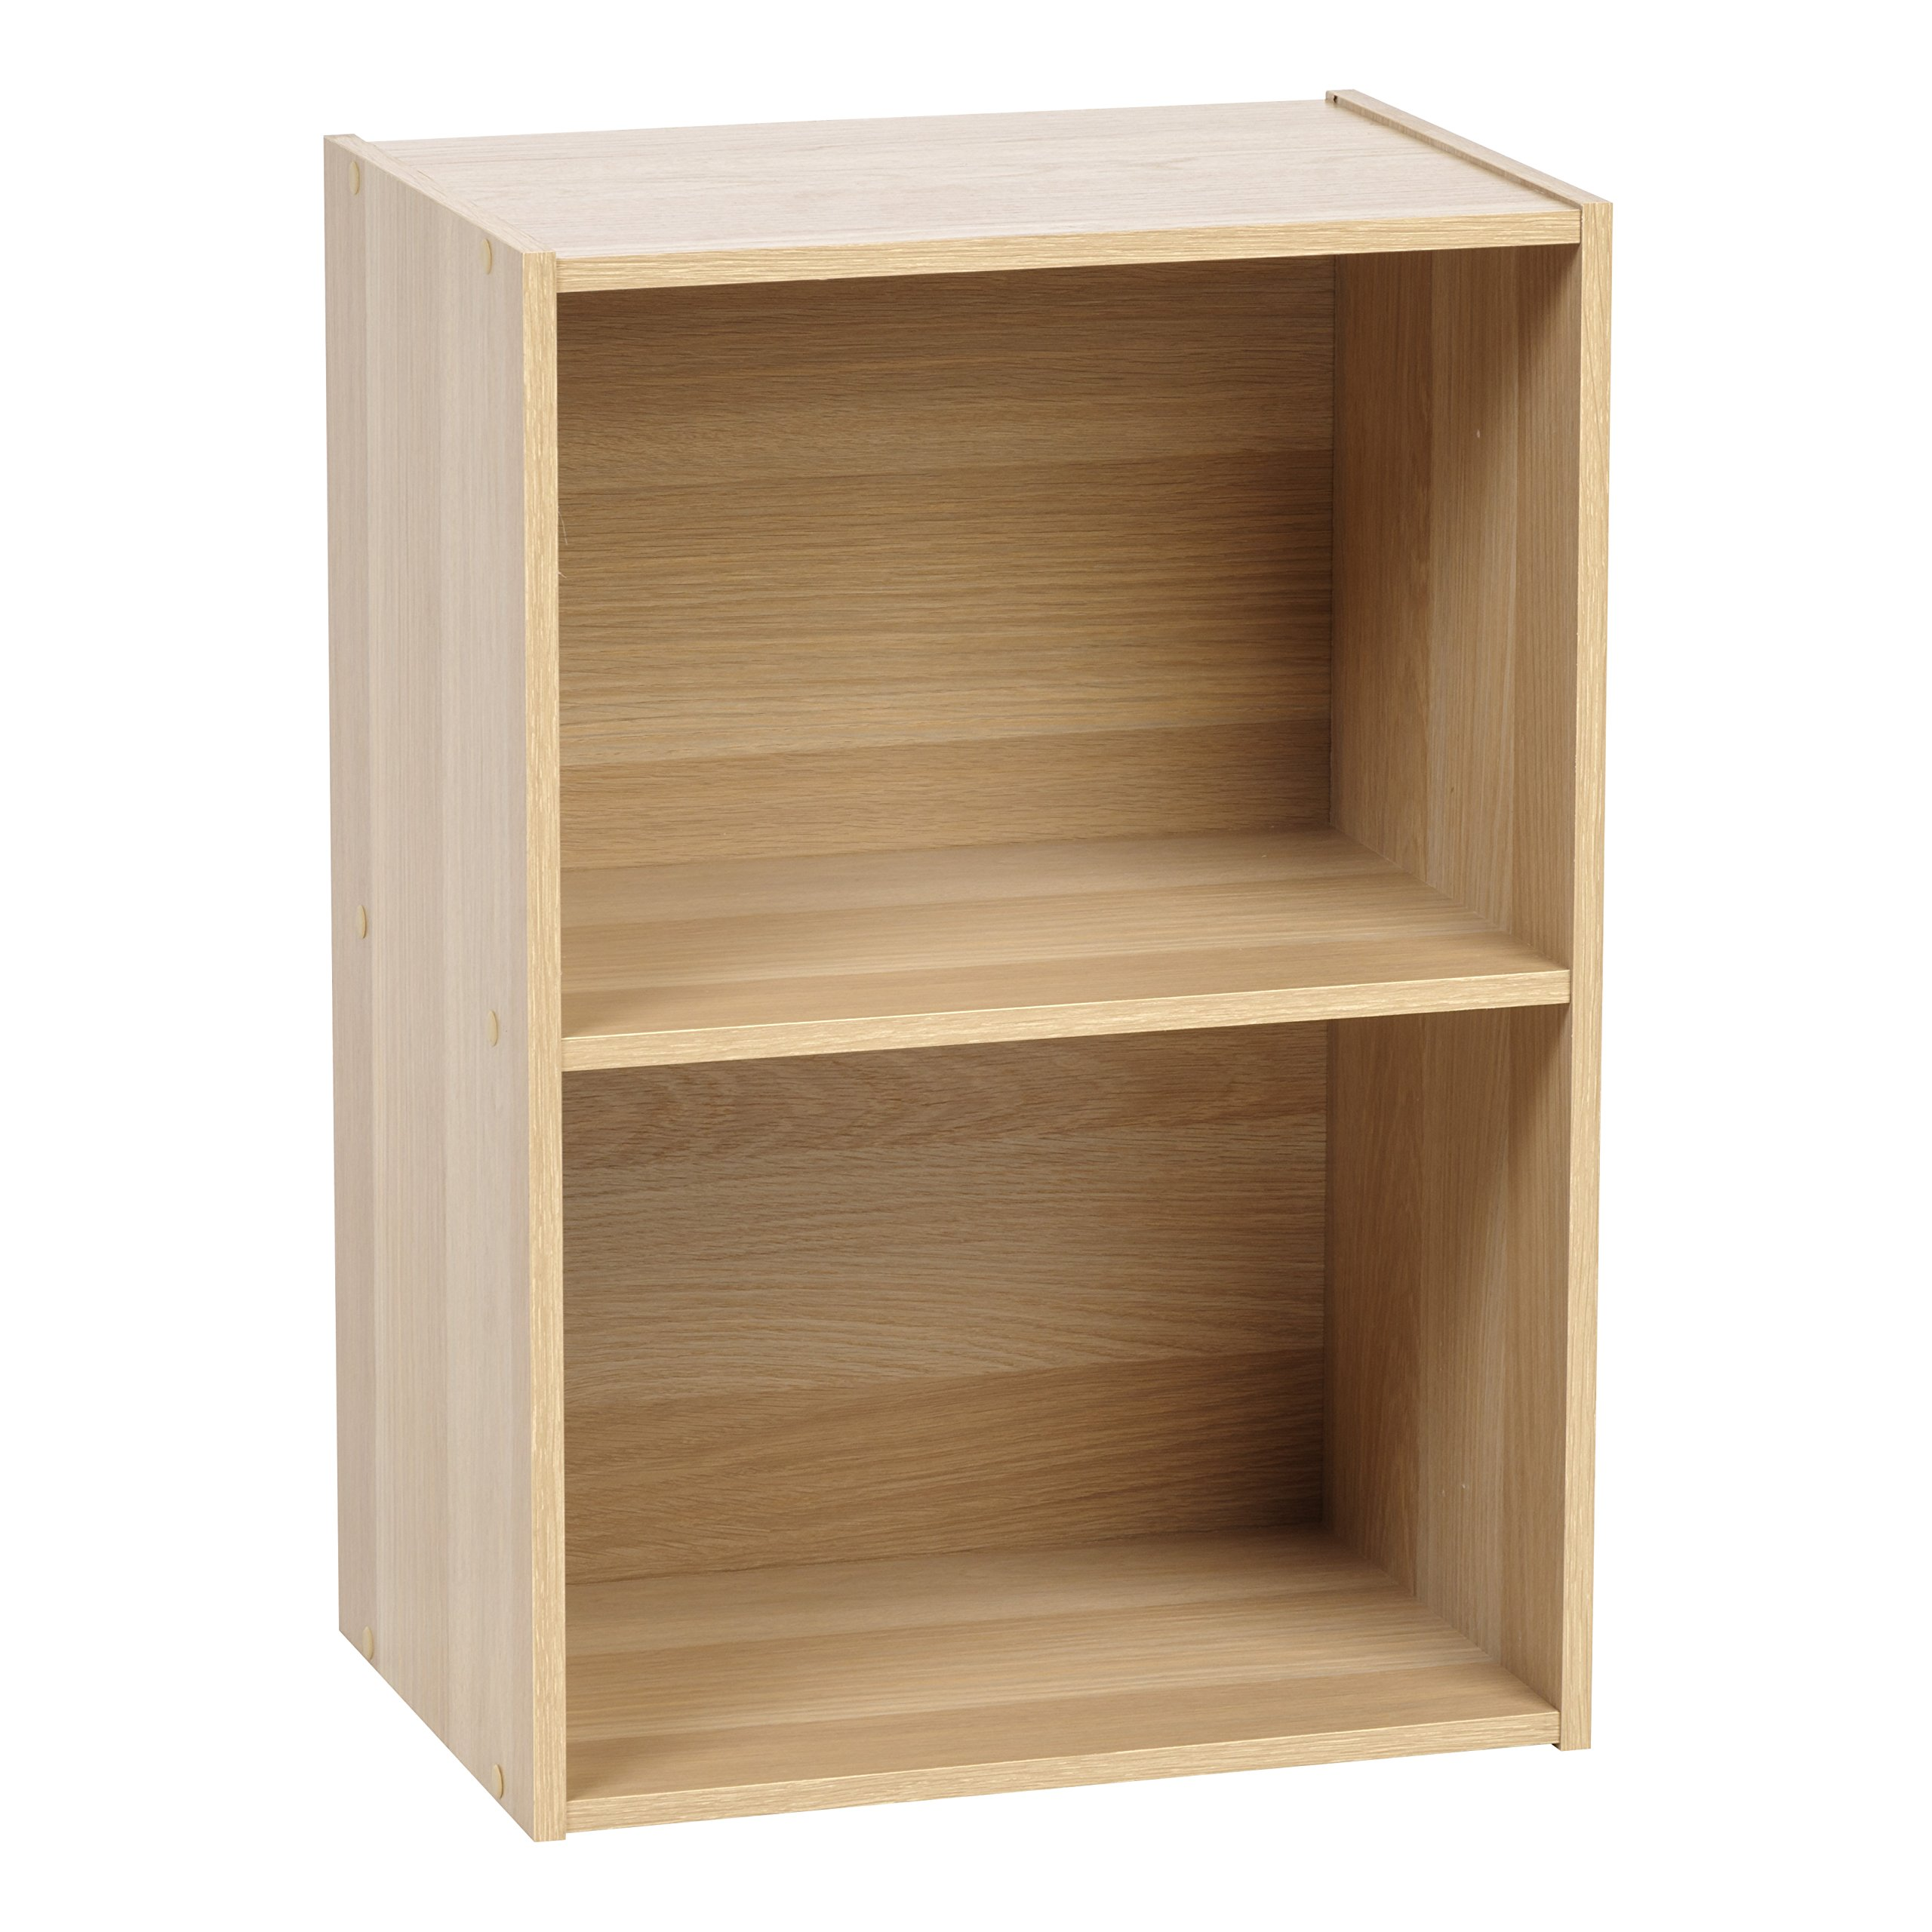 IRIS USA 596164 2-Tier Wood Storage Shelf, Light Brown by IRIS USA, Inc.